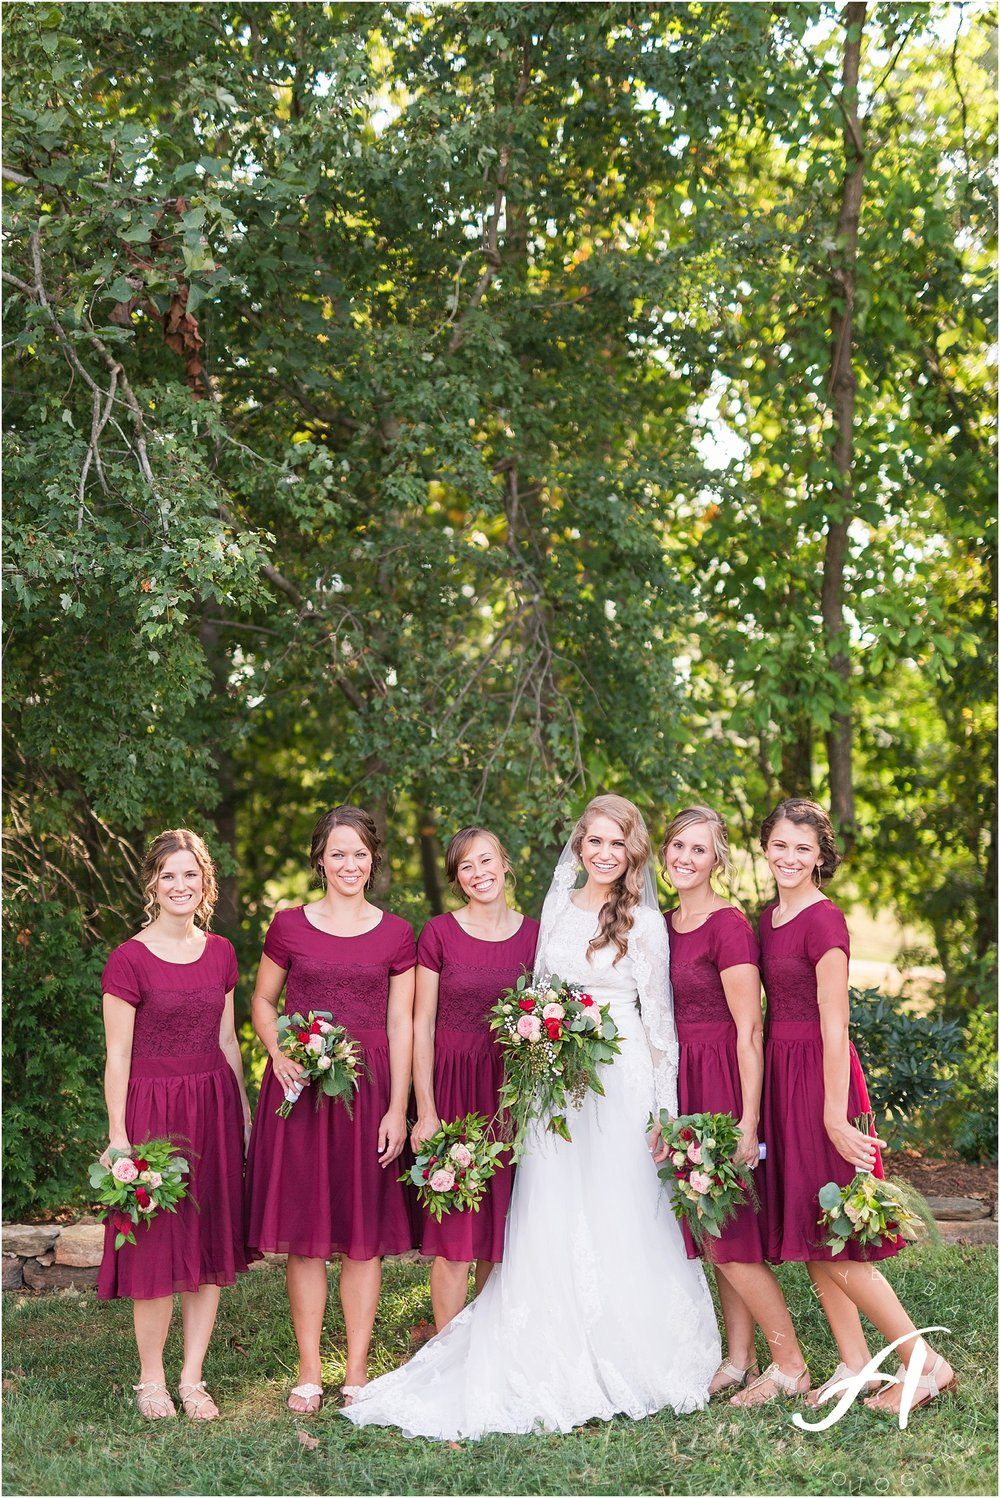 Farmville Wedding Photographer || Autumn Backyard Wedding in Central Virginia || Ashley Eiban Photography || www.ashleyeiban.com